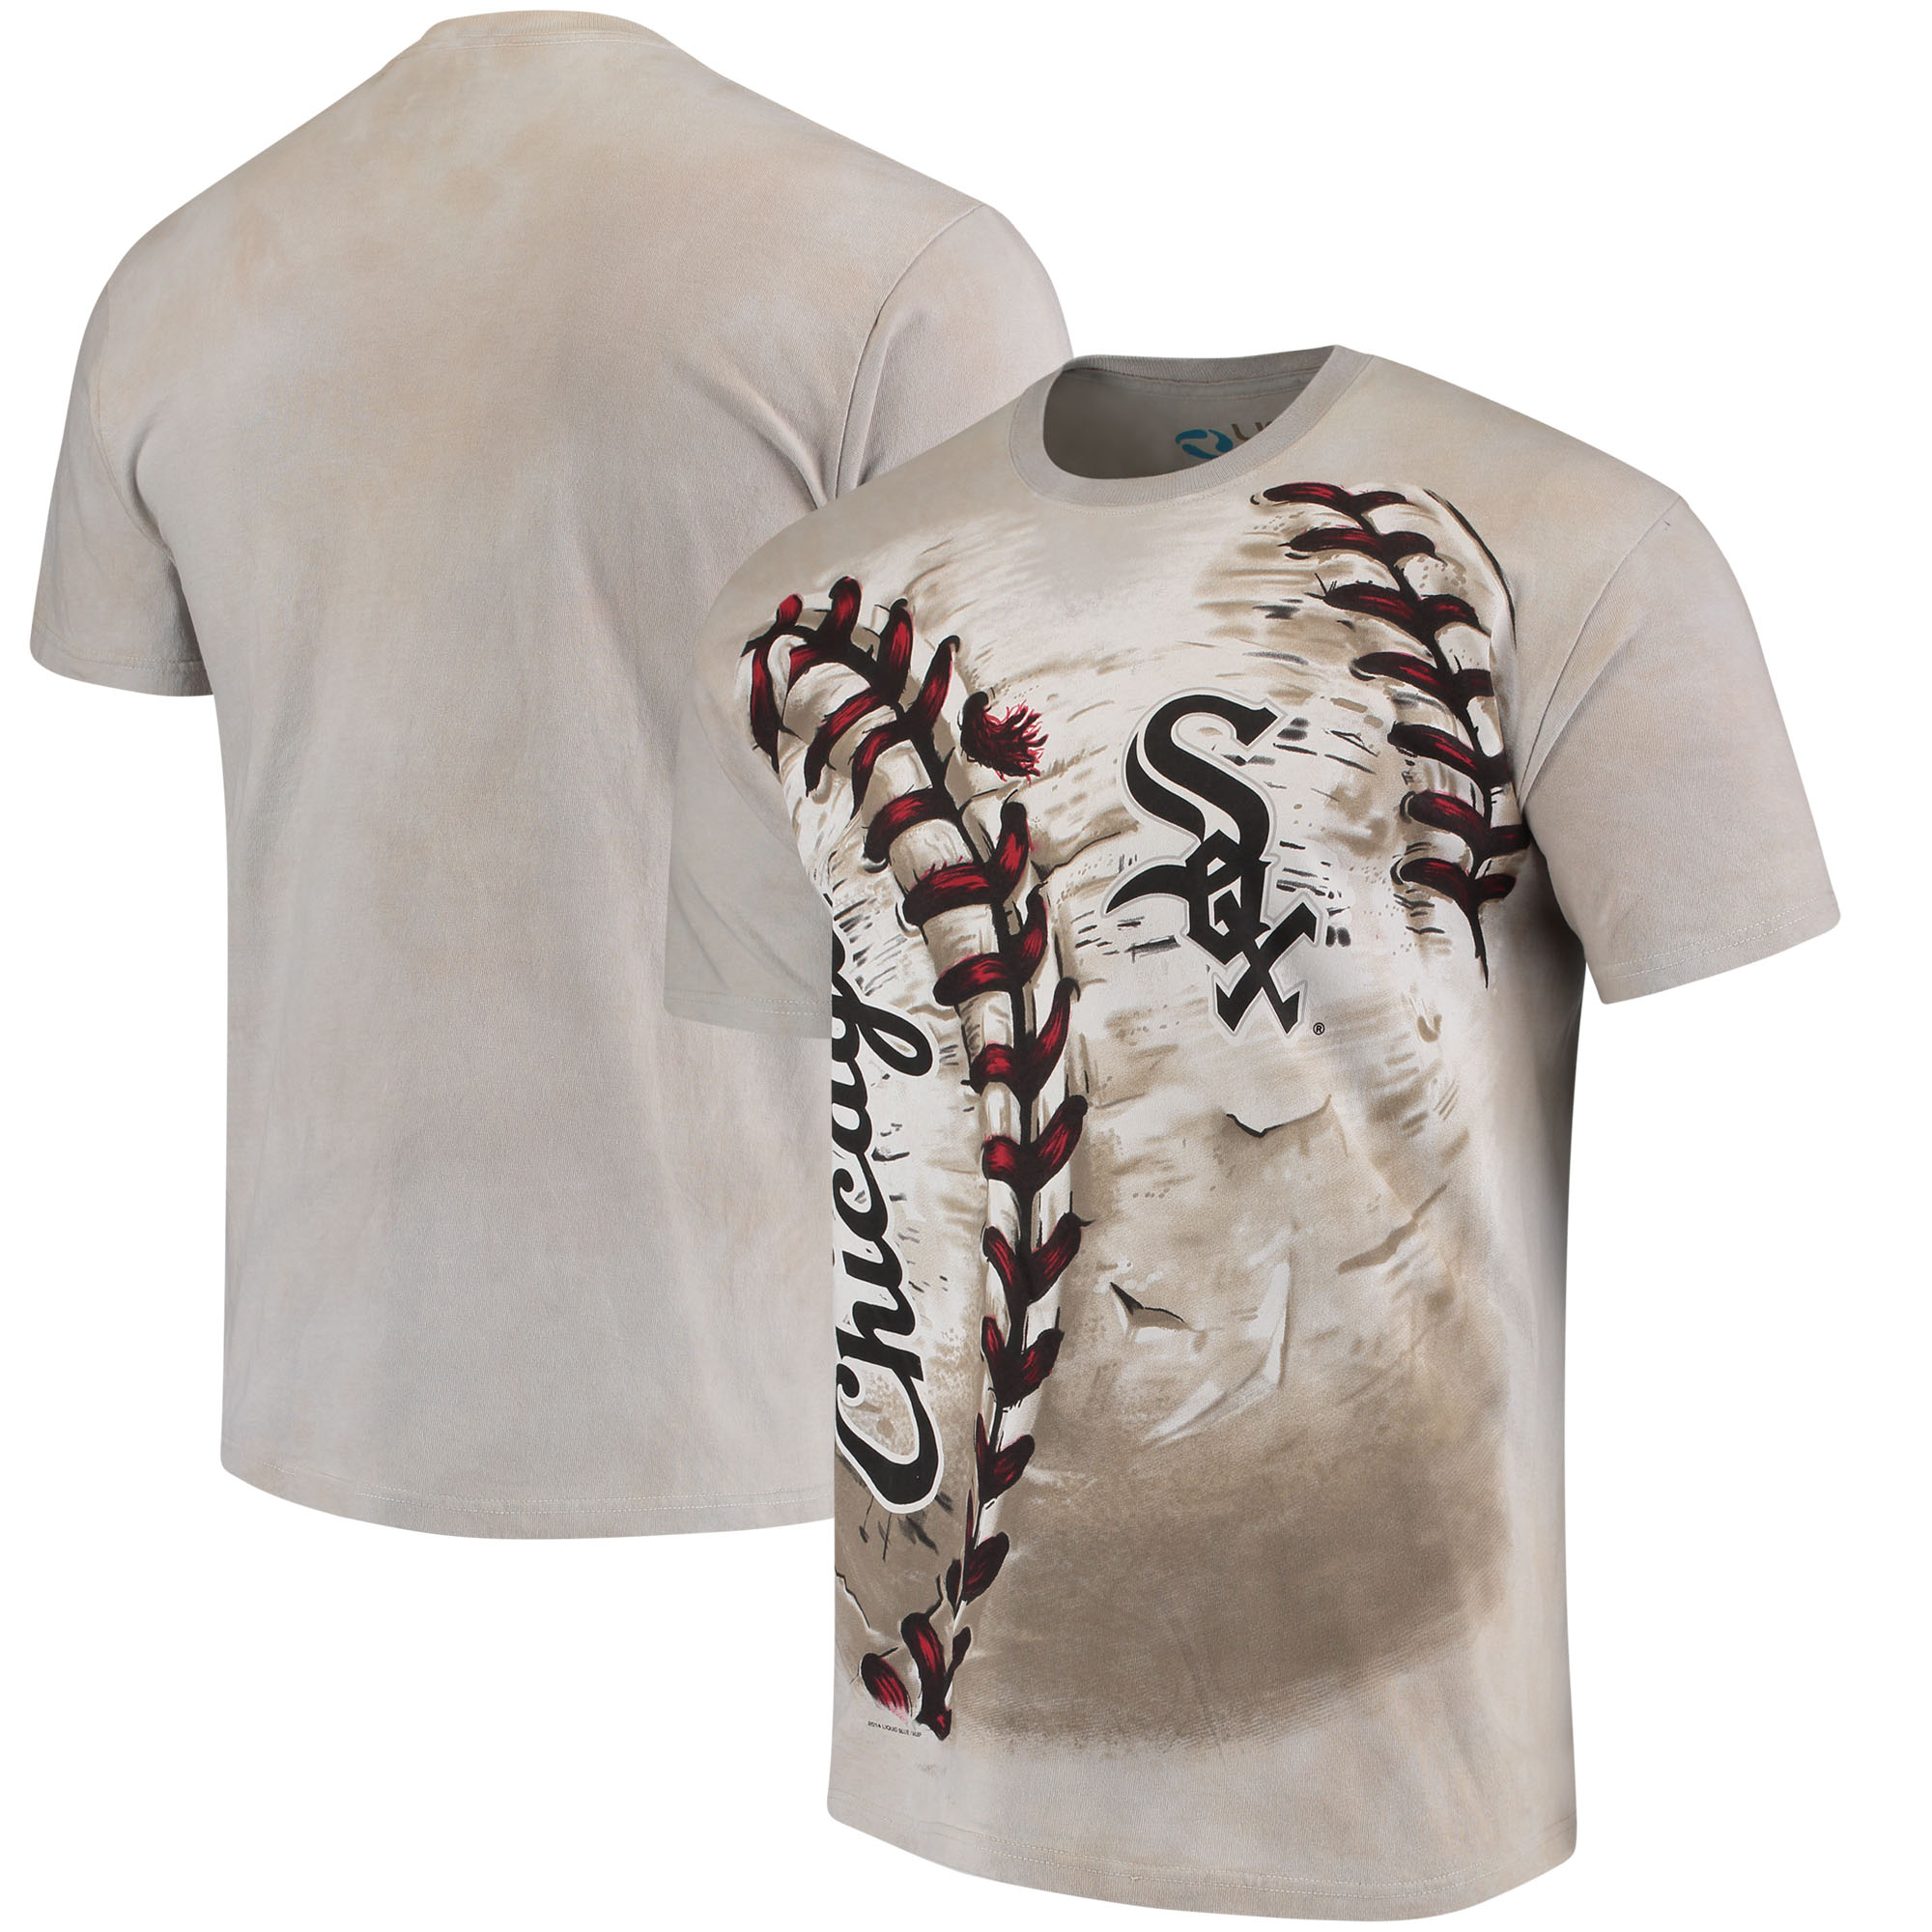 Chicago White Sox Hardball Tie-Dye T-Shirt - Cream